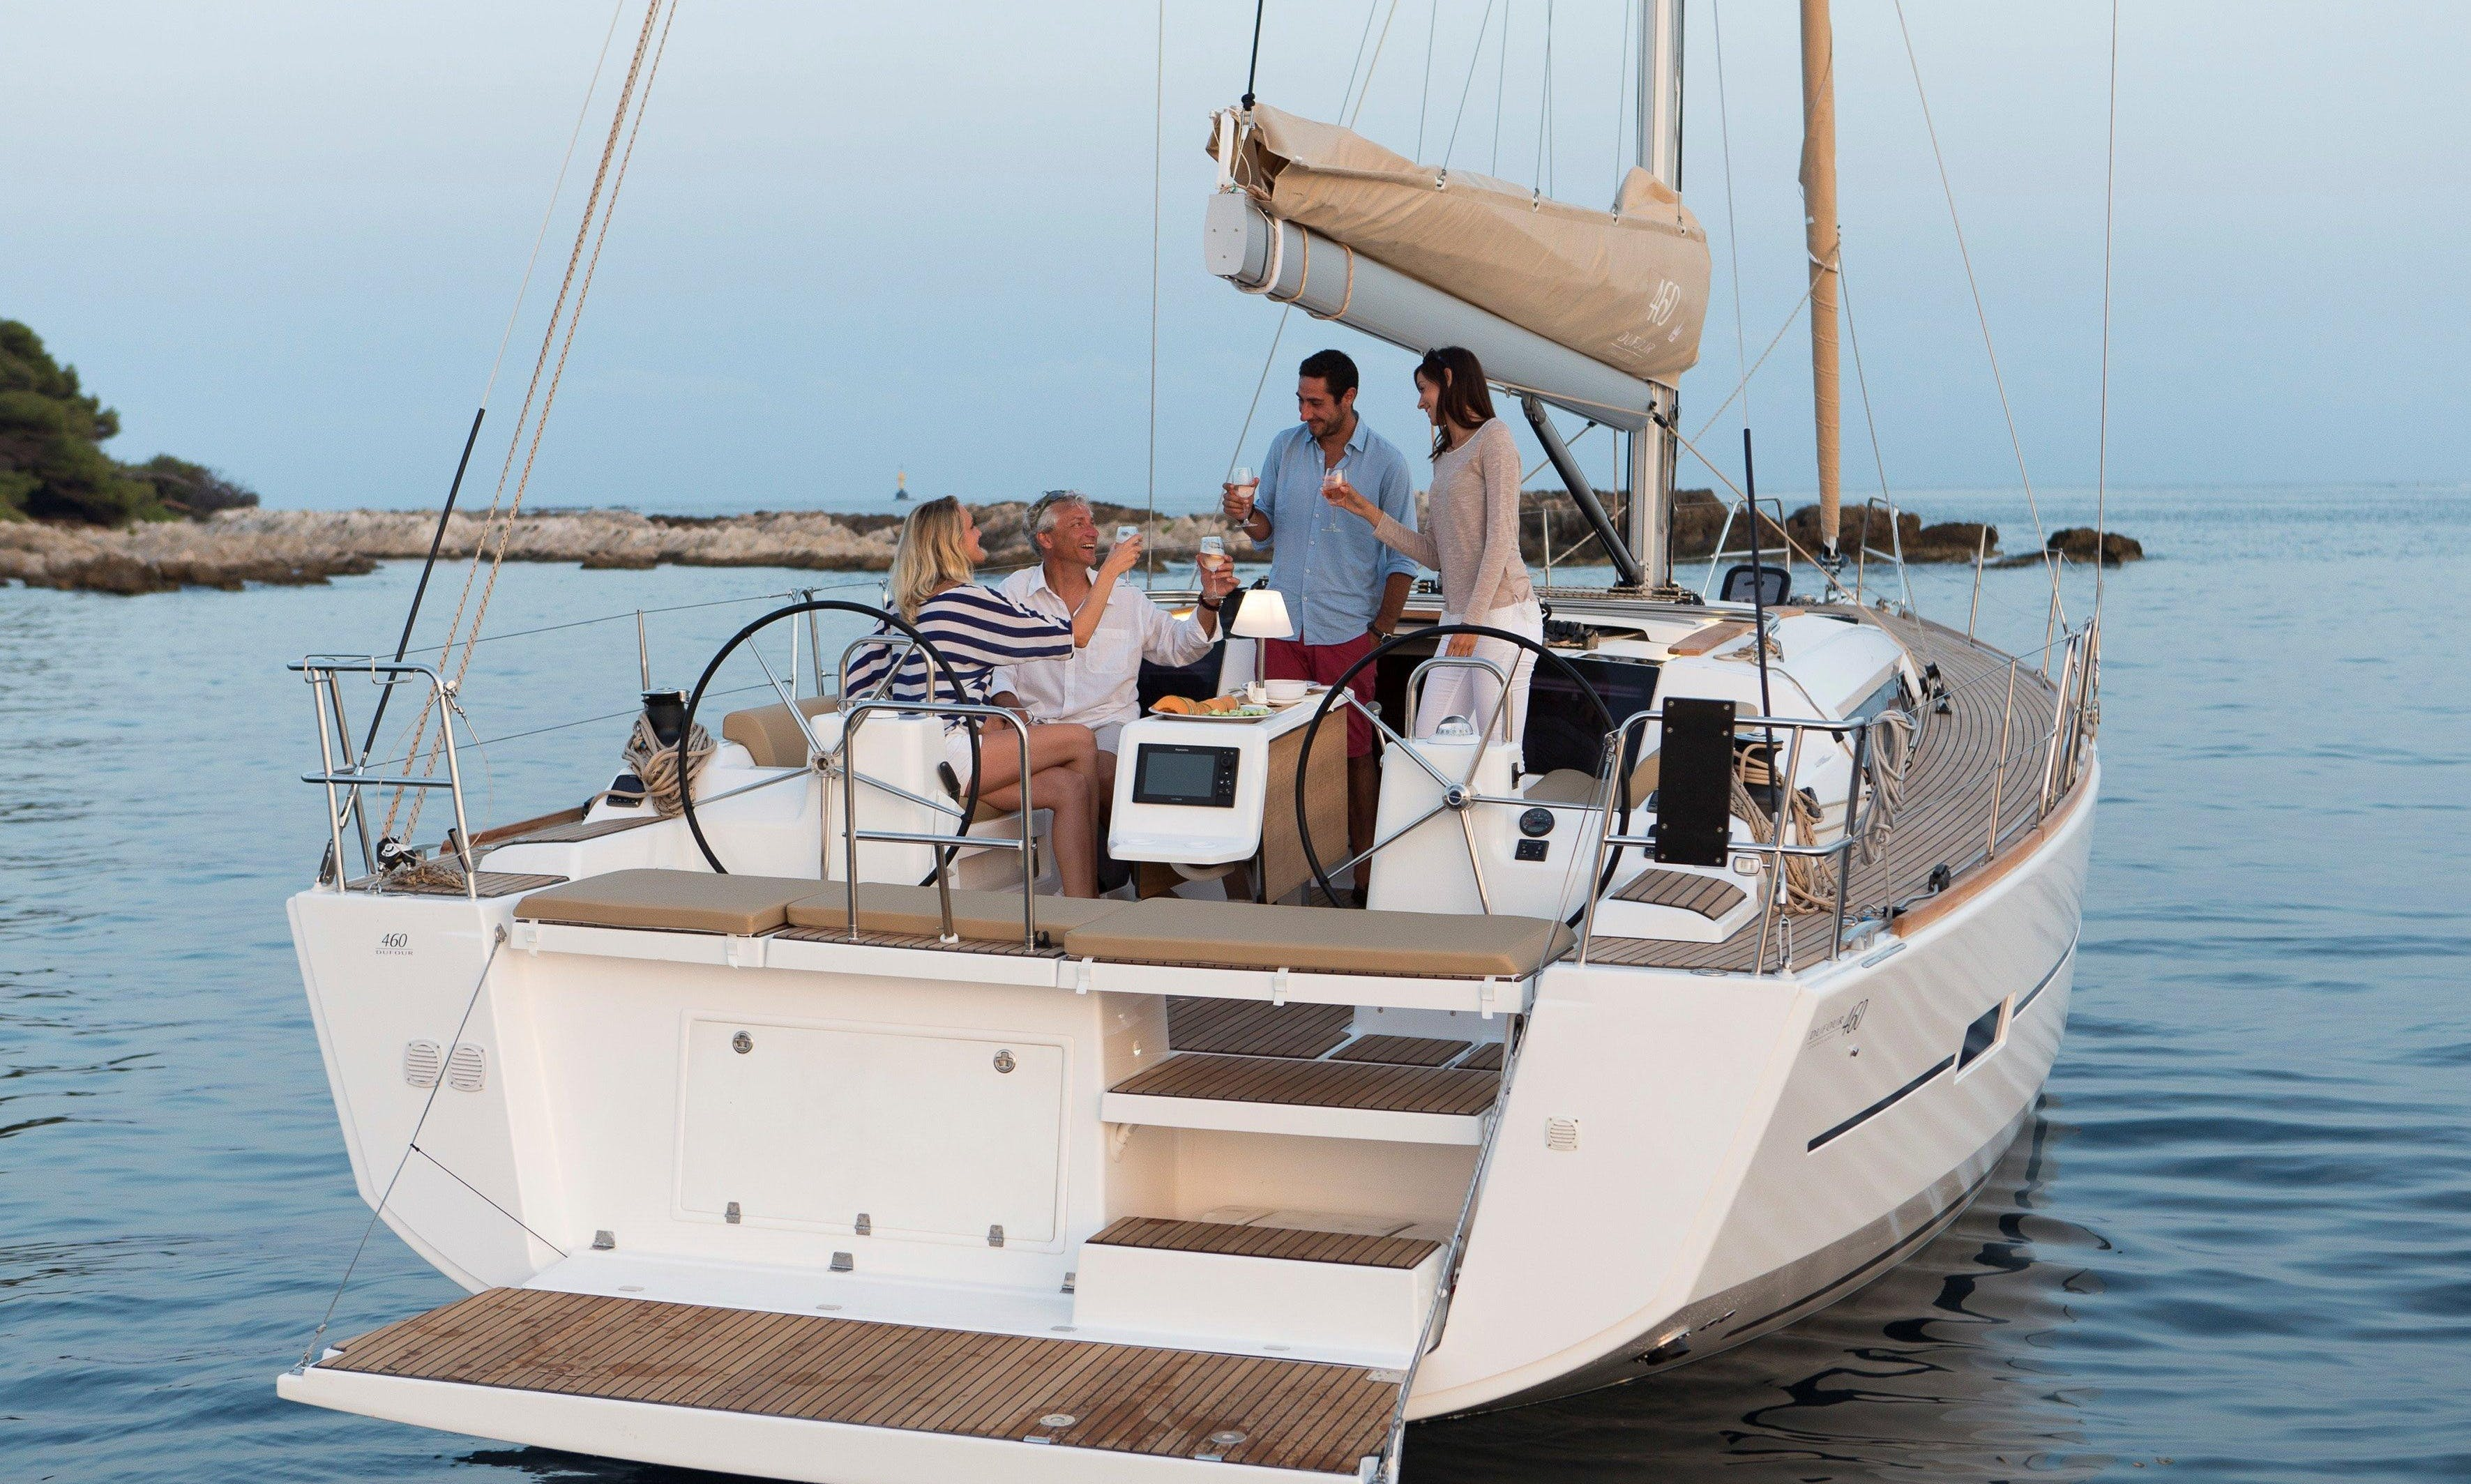 Charter this Dufour 450 sailboat in Cartagena